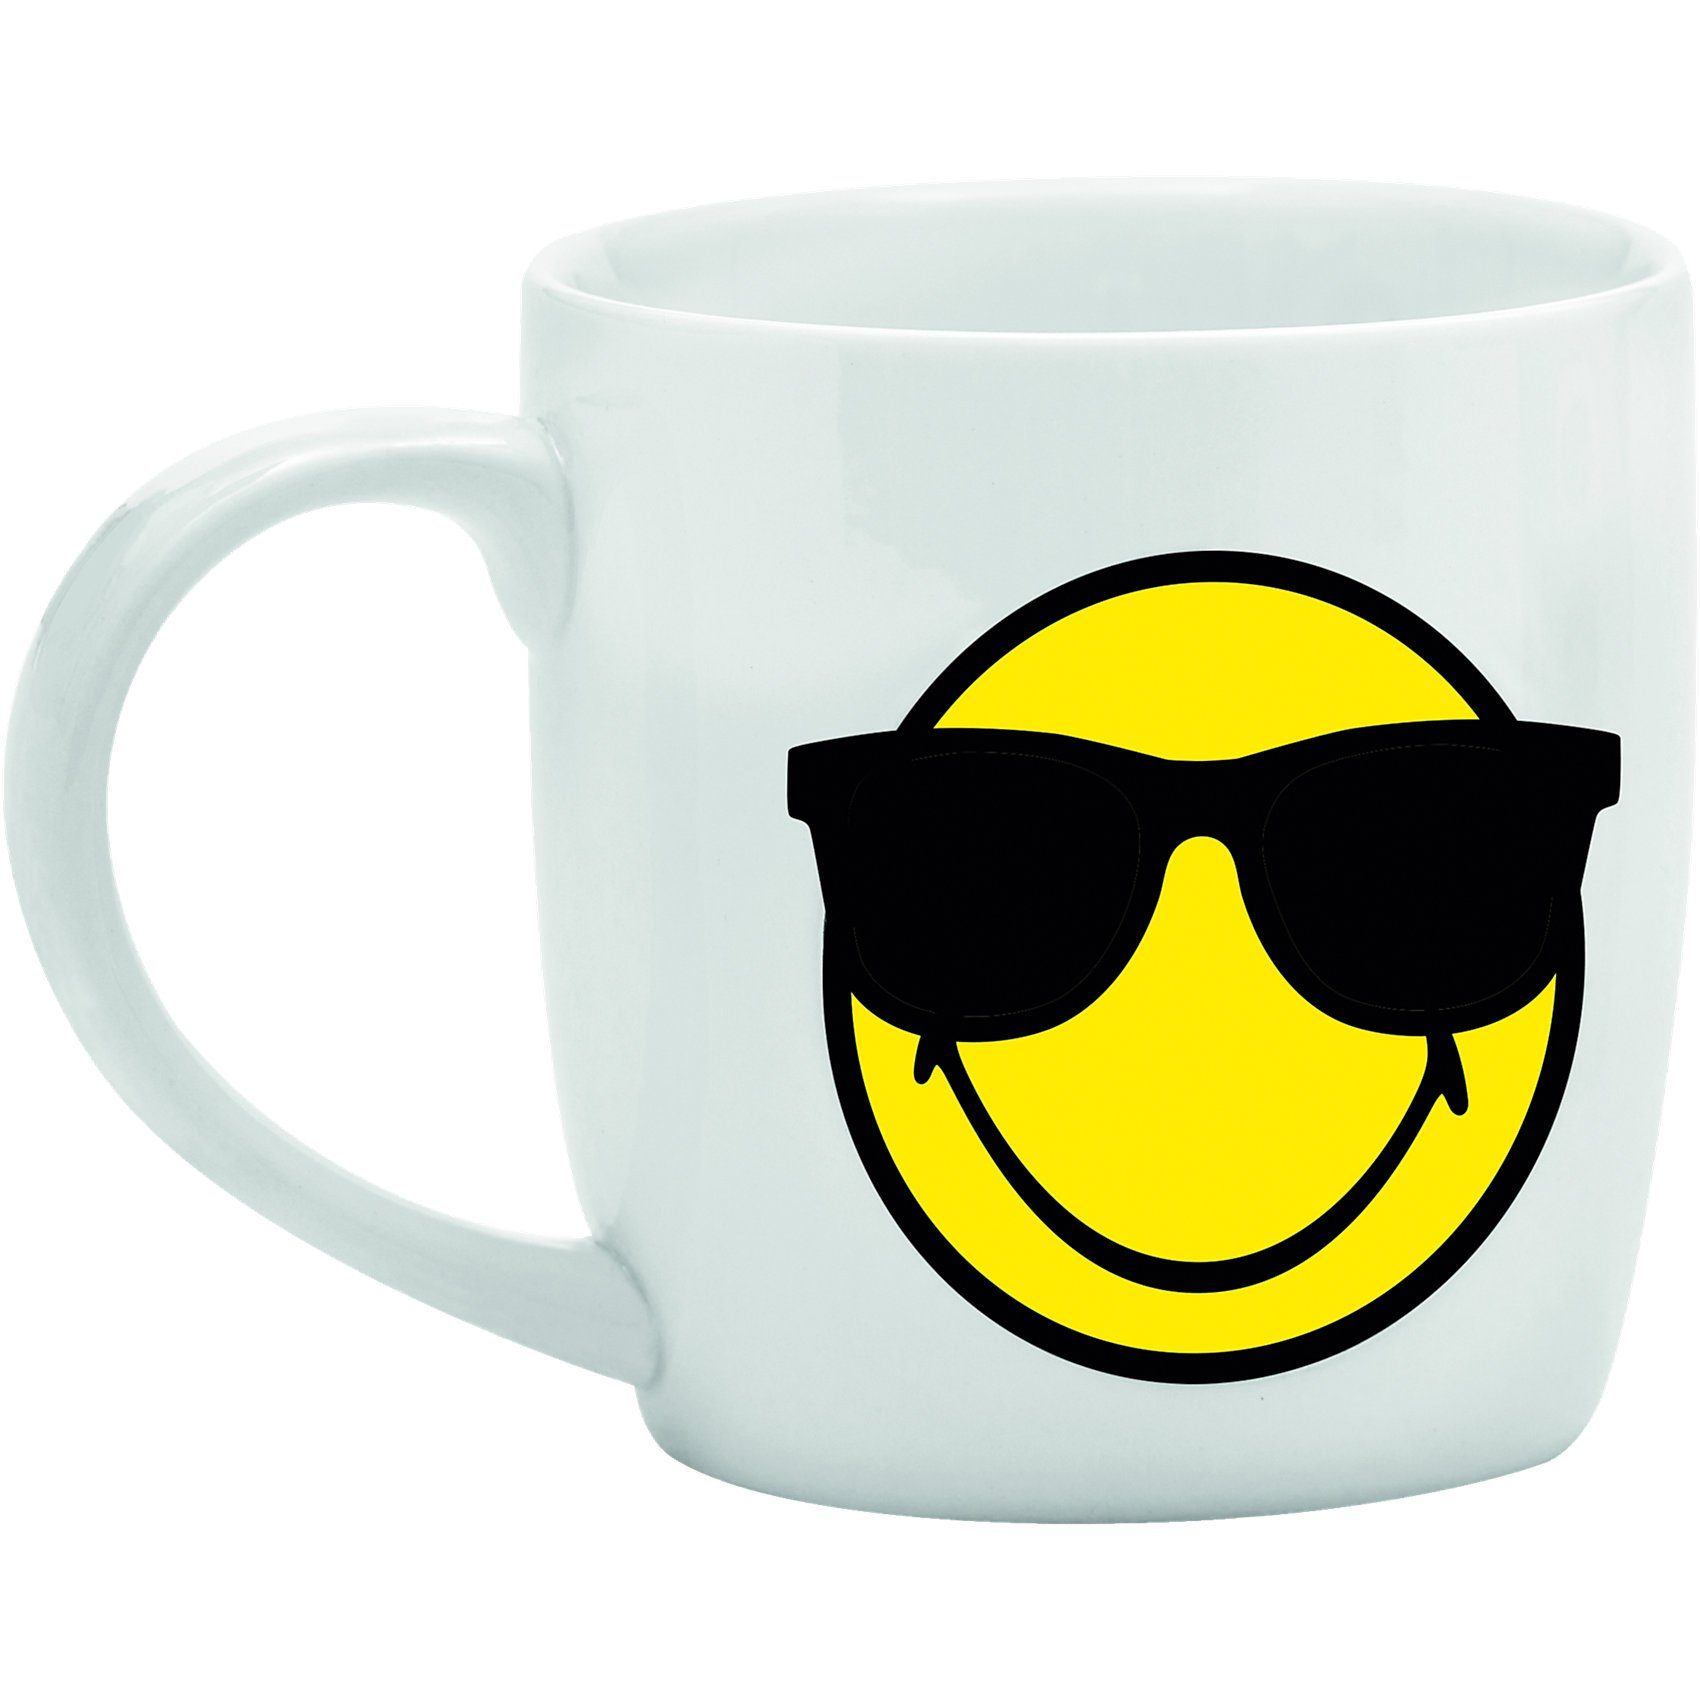 Smiley Tasse, weiß